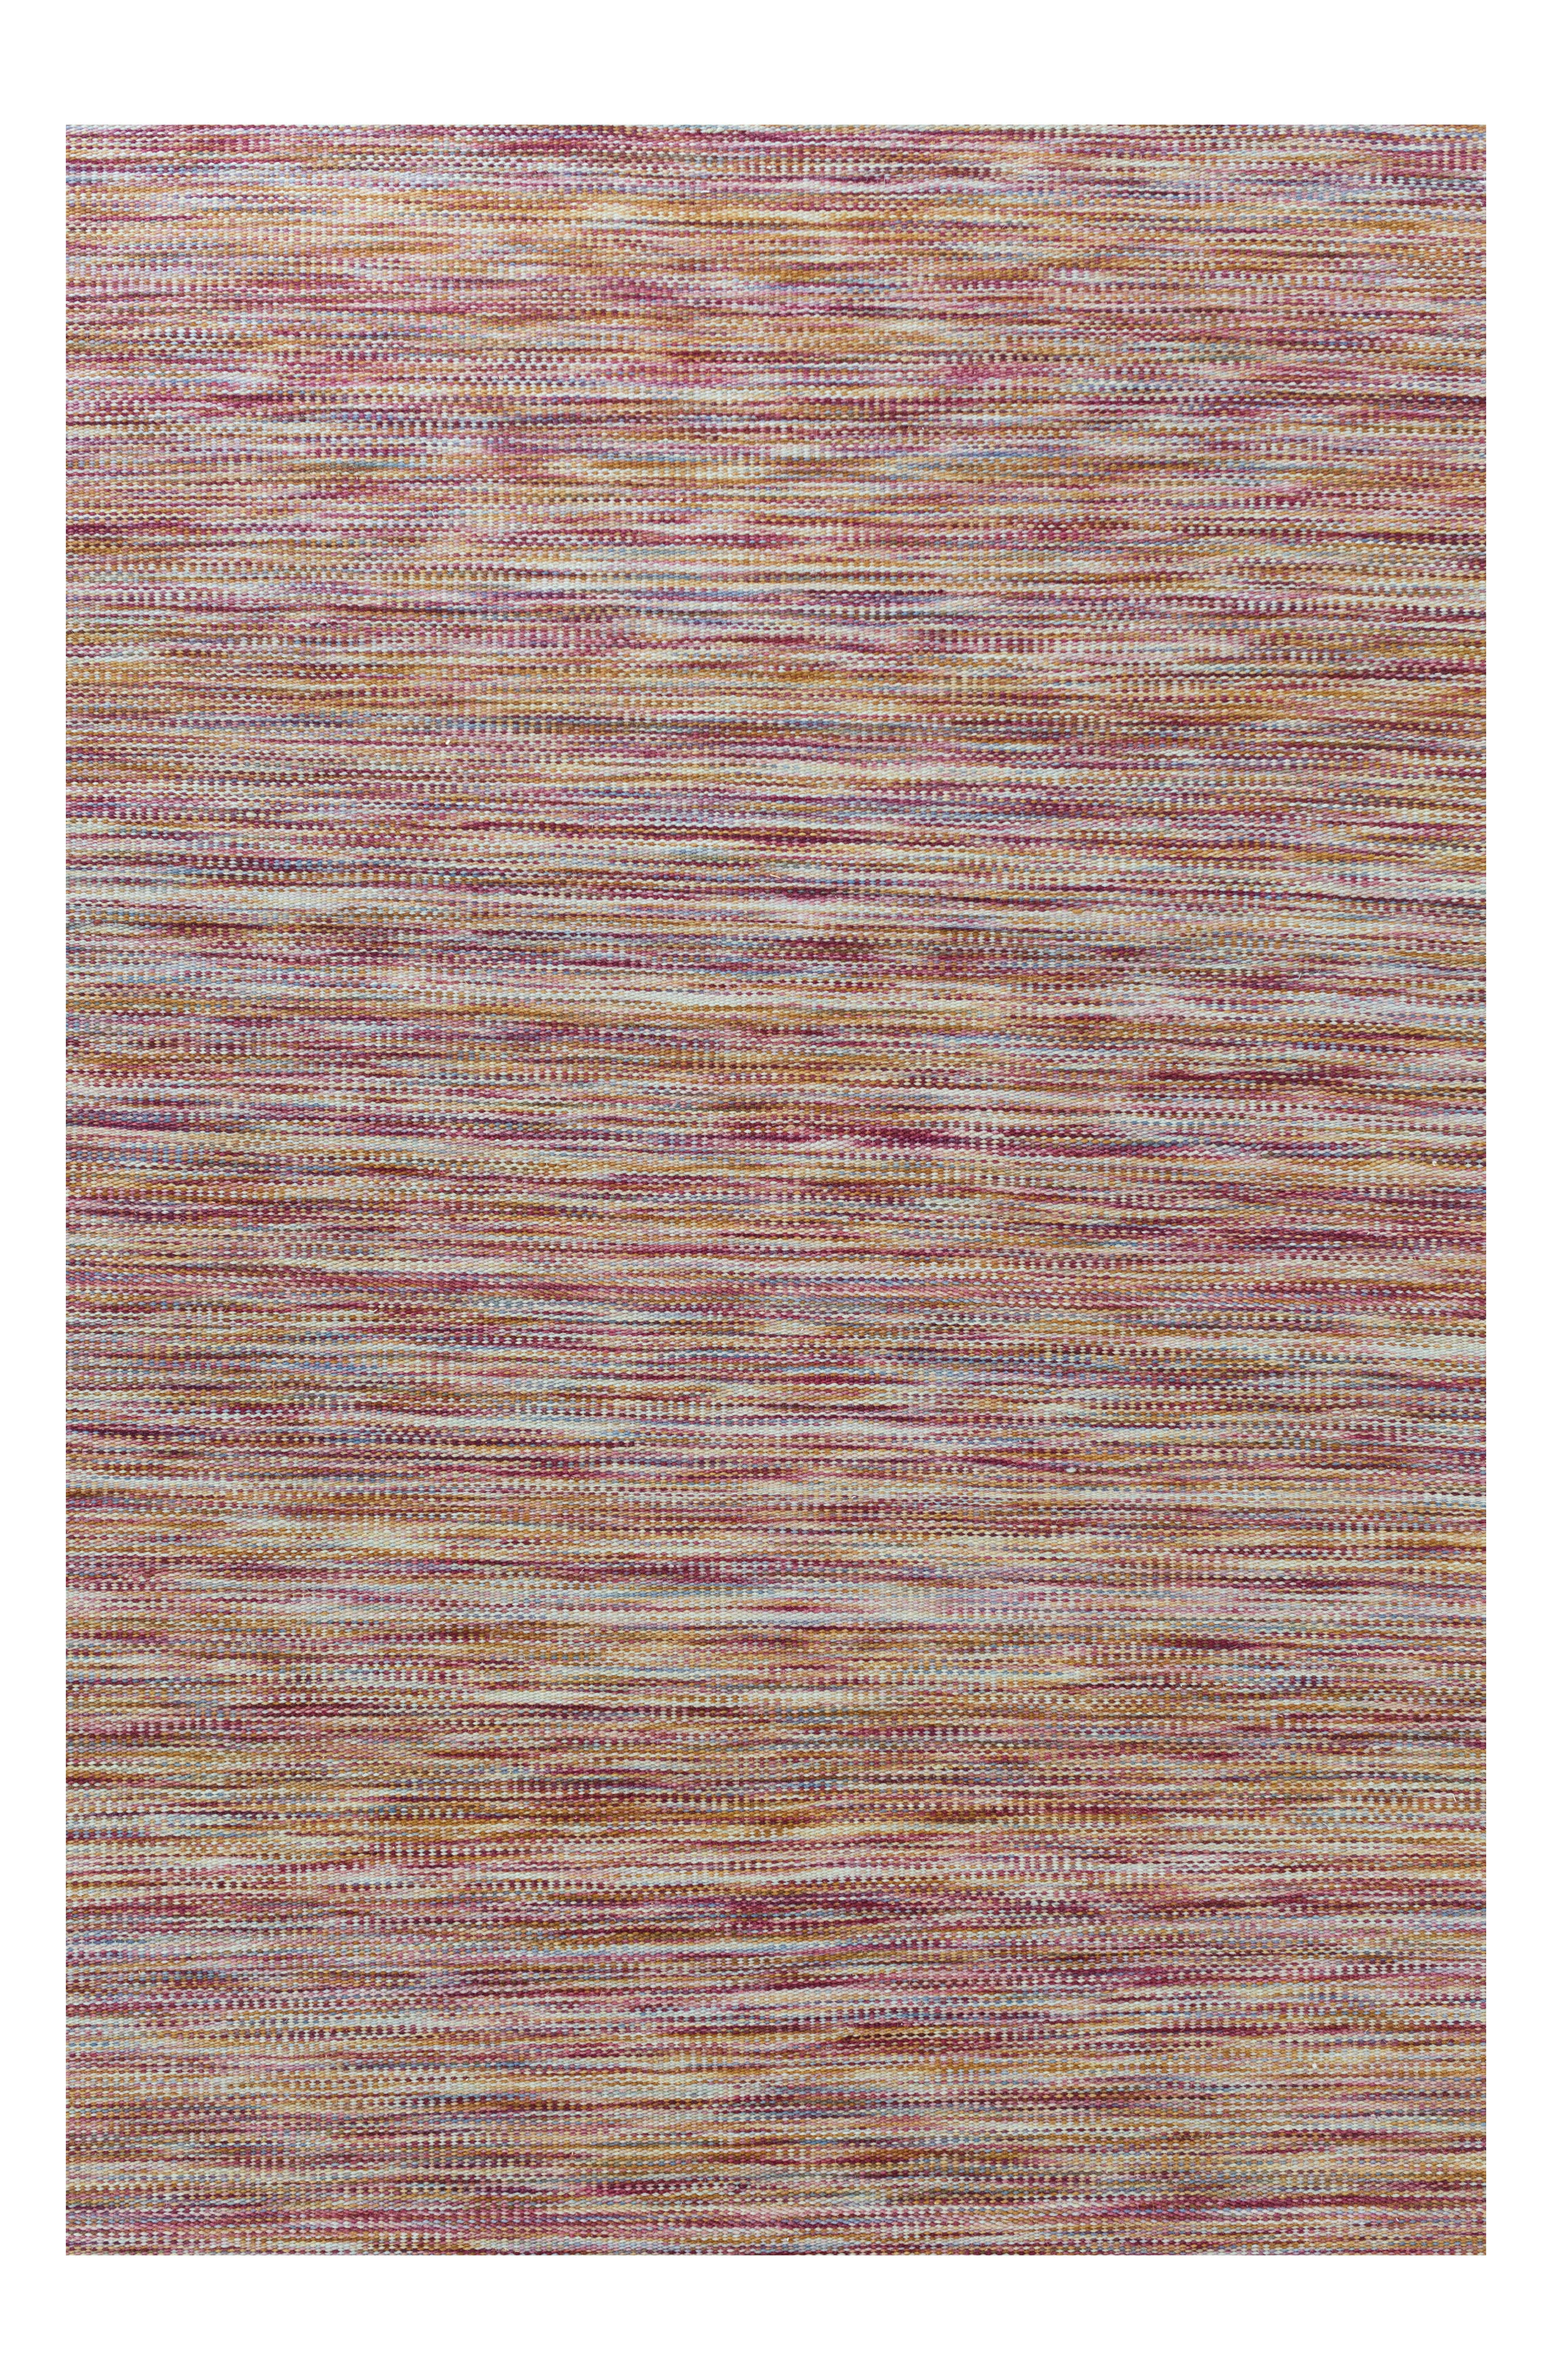 Bloomsbury Handwoven Wool Blend Rug,                             Main thumbnail 1, color,                             200